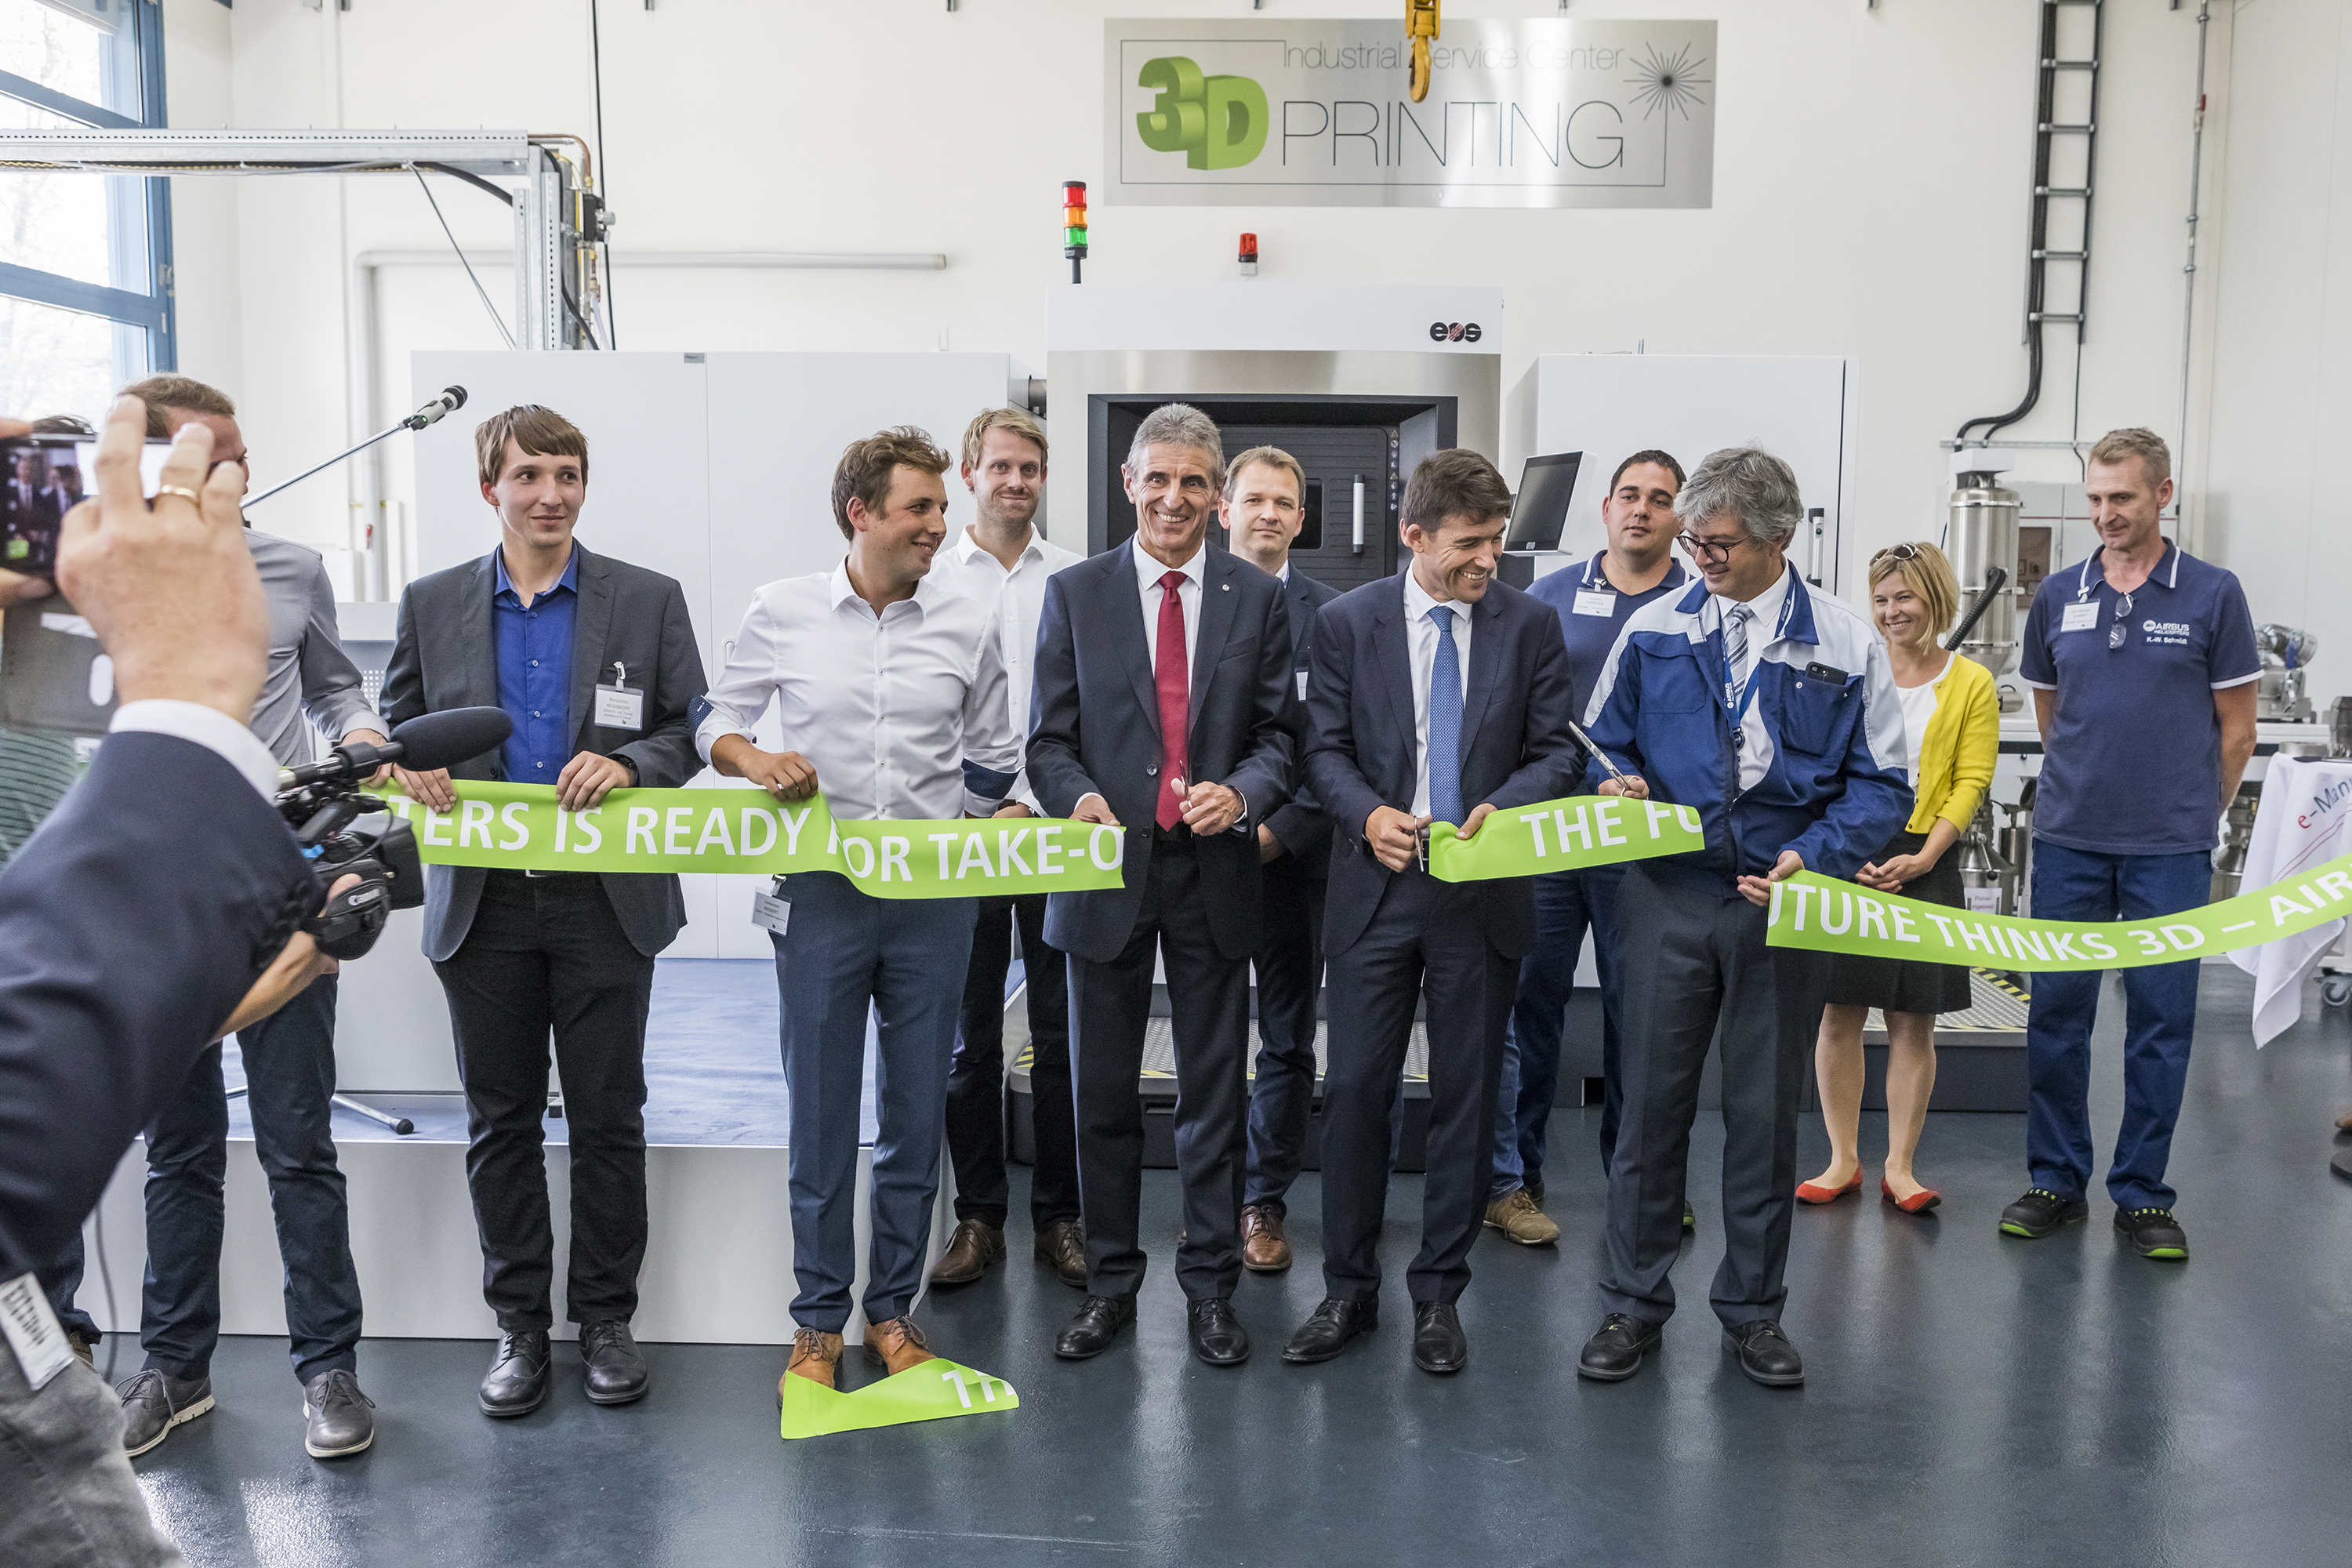 From left to right: Andreas Stöckle, Head of Industrial Site Airbus Helicopters Donauwörth, Bruno Even, CEO Airbus Helicopters, Christian Cornille, Head of Industry Airbus Helicopters do the ribbon cutting for the industrial metallic 3D printing at Airbus Helicopters in Donauwörth. Photo via Airbus Helicopters.